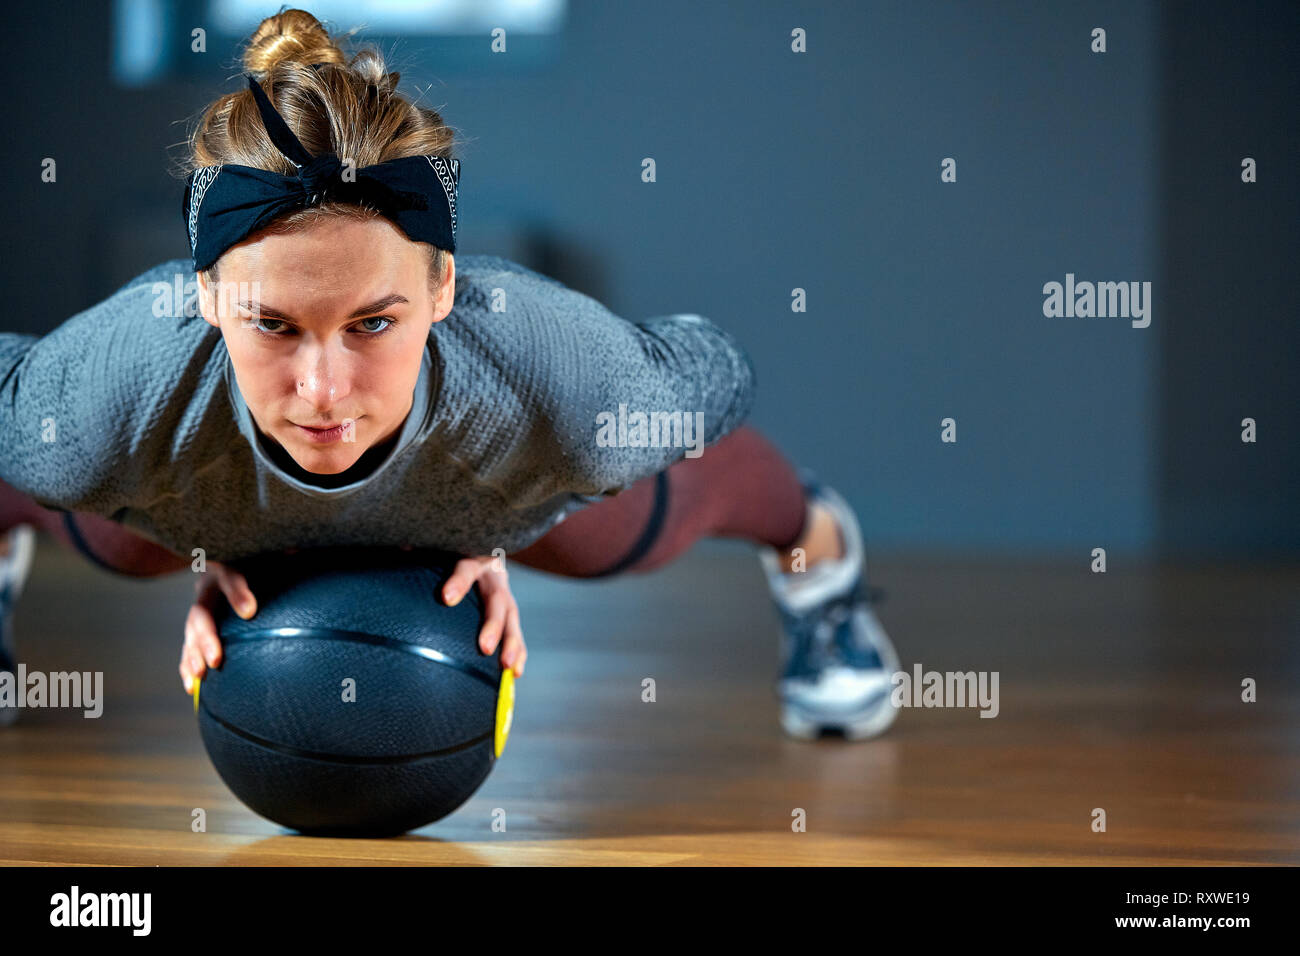 Fit and muscular woman with piercing eyes doing intense core workout with kettlebell in gym. Female exercising at crossfit gym. - Stock Image